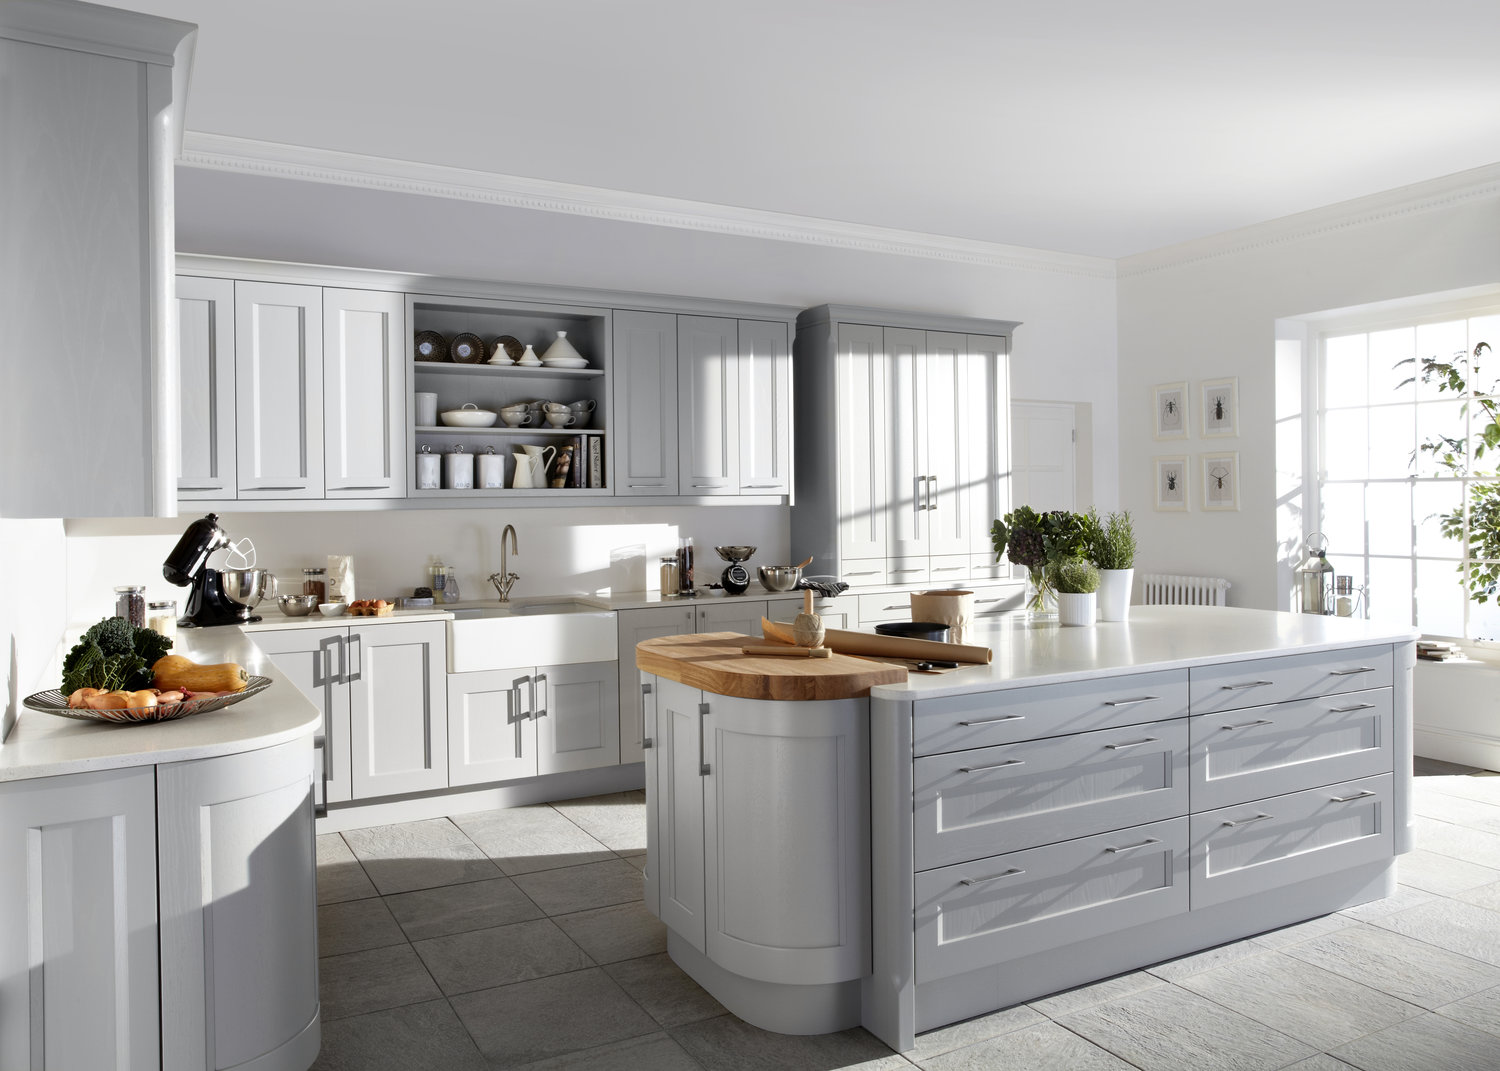 curved shaker profile doors add a softer feel in this stunning dove grey Kew kitchen.